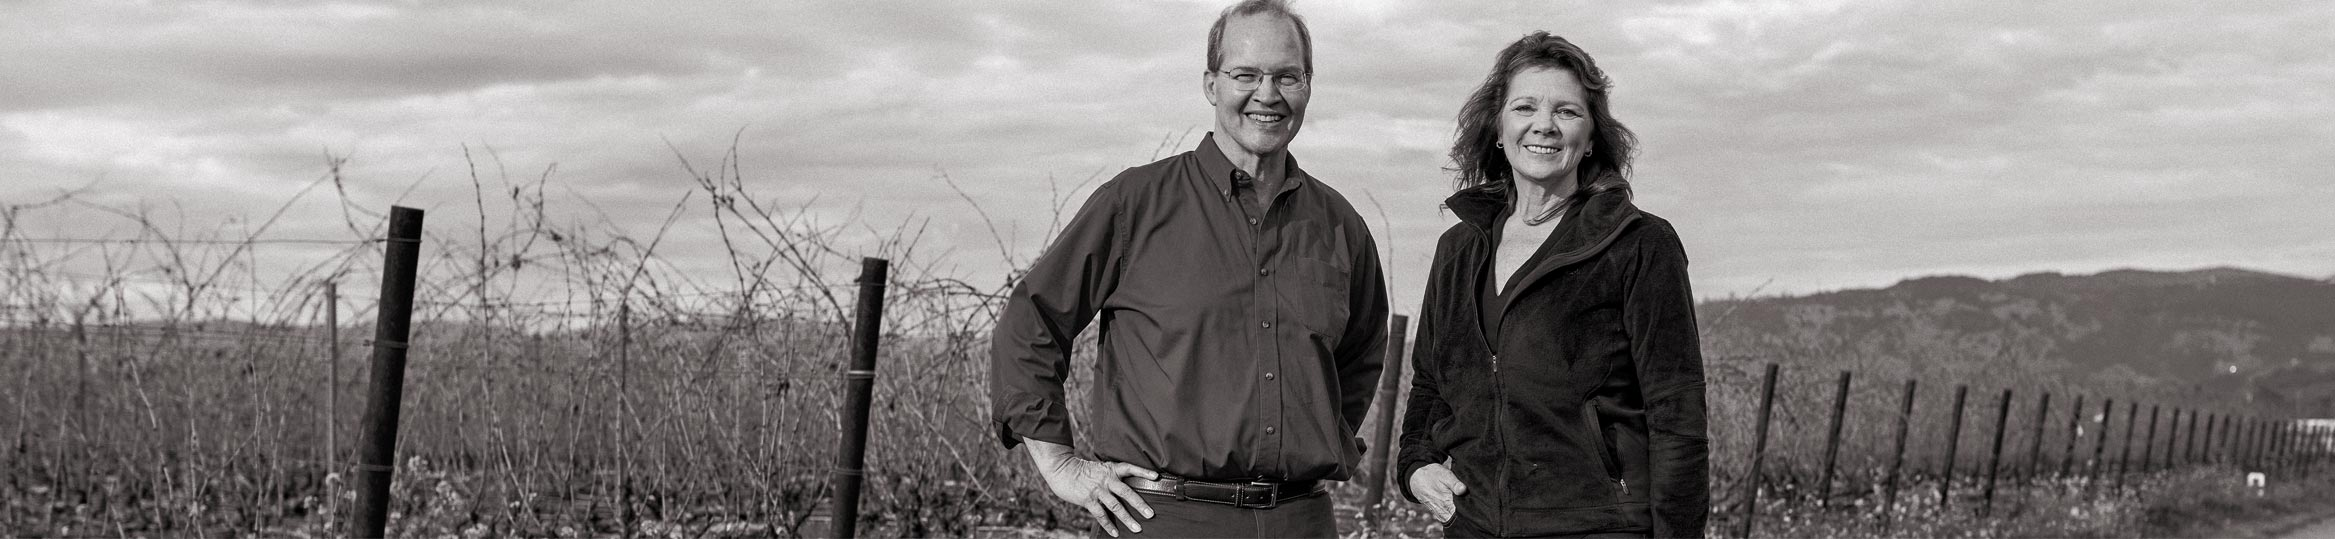 Cornerstone Cellars relies on the winemaking talents of Charles Thomas and Kari Auringer.